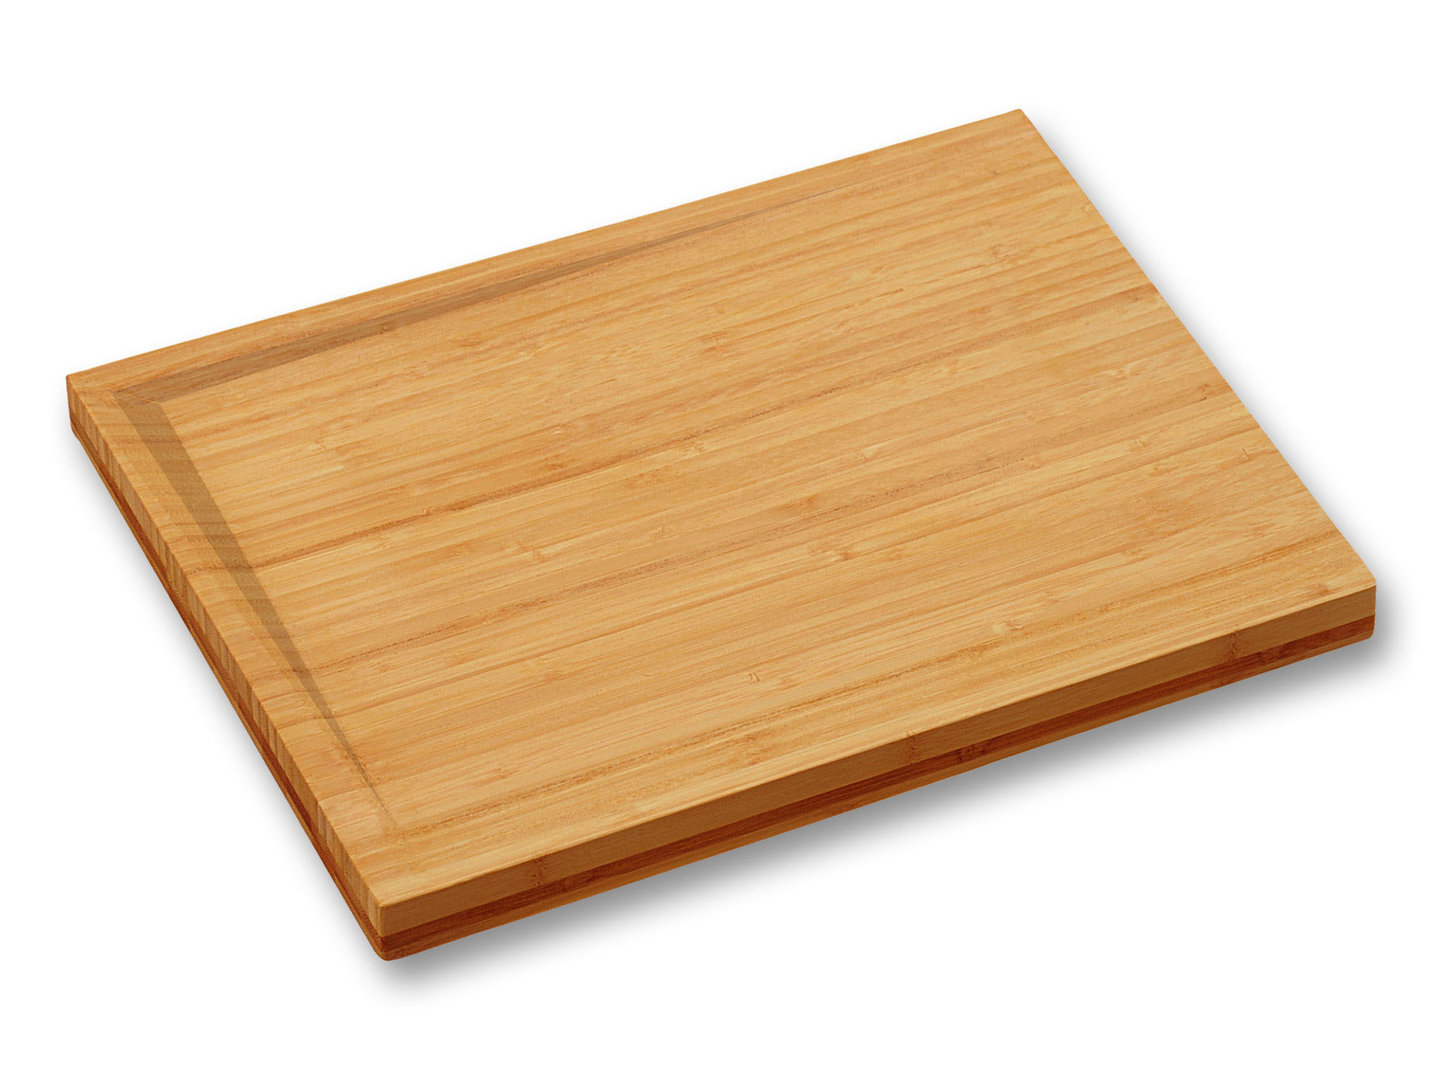 KESPER bamboo cutting board with inclined surface 38 x 28 x 3.5 cm